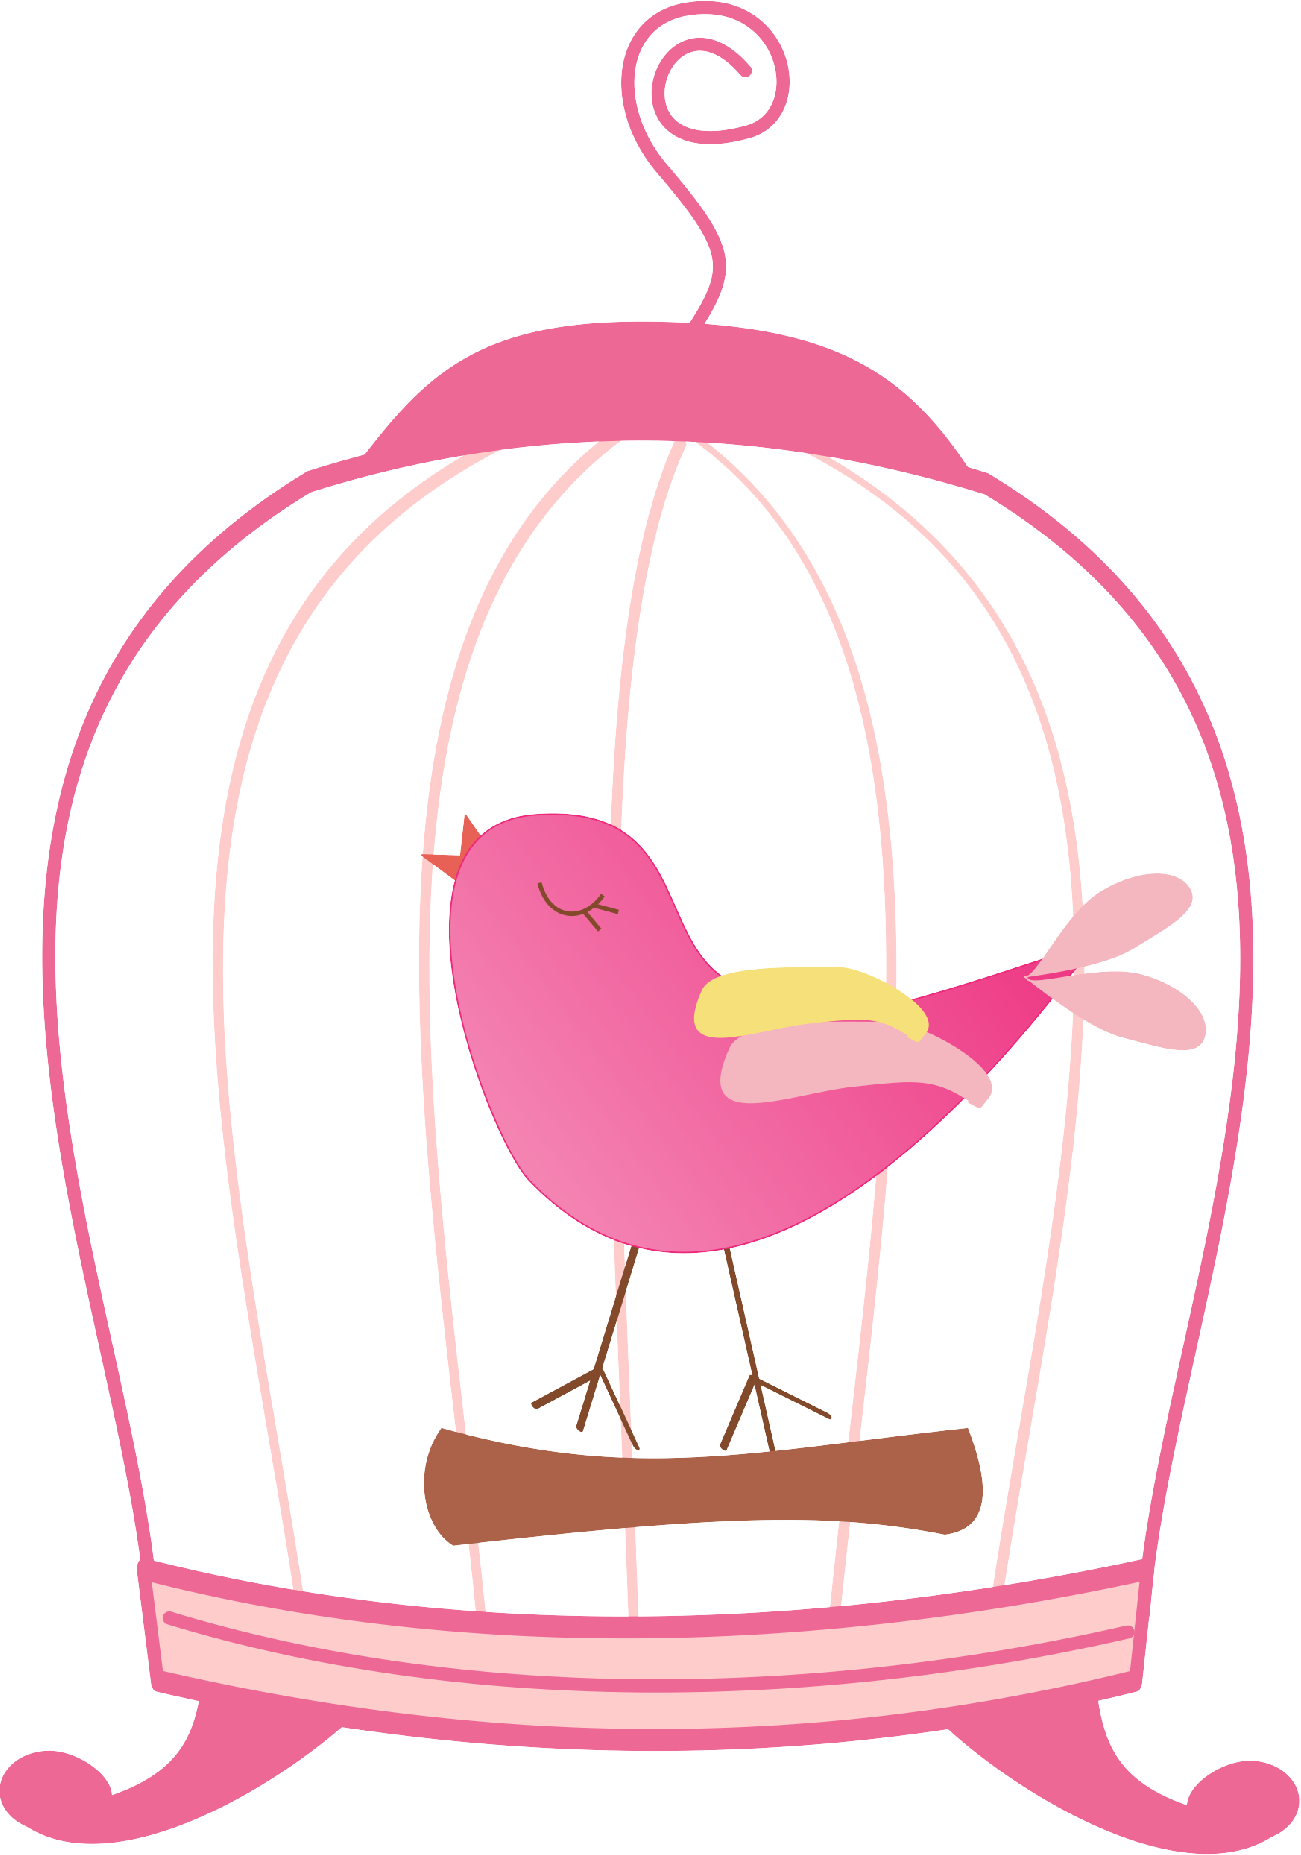 png transparent library Cage clipart sad. Index of images birdcagepng.